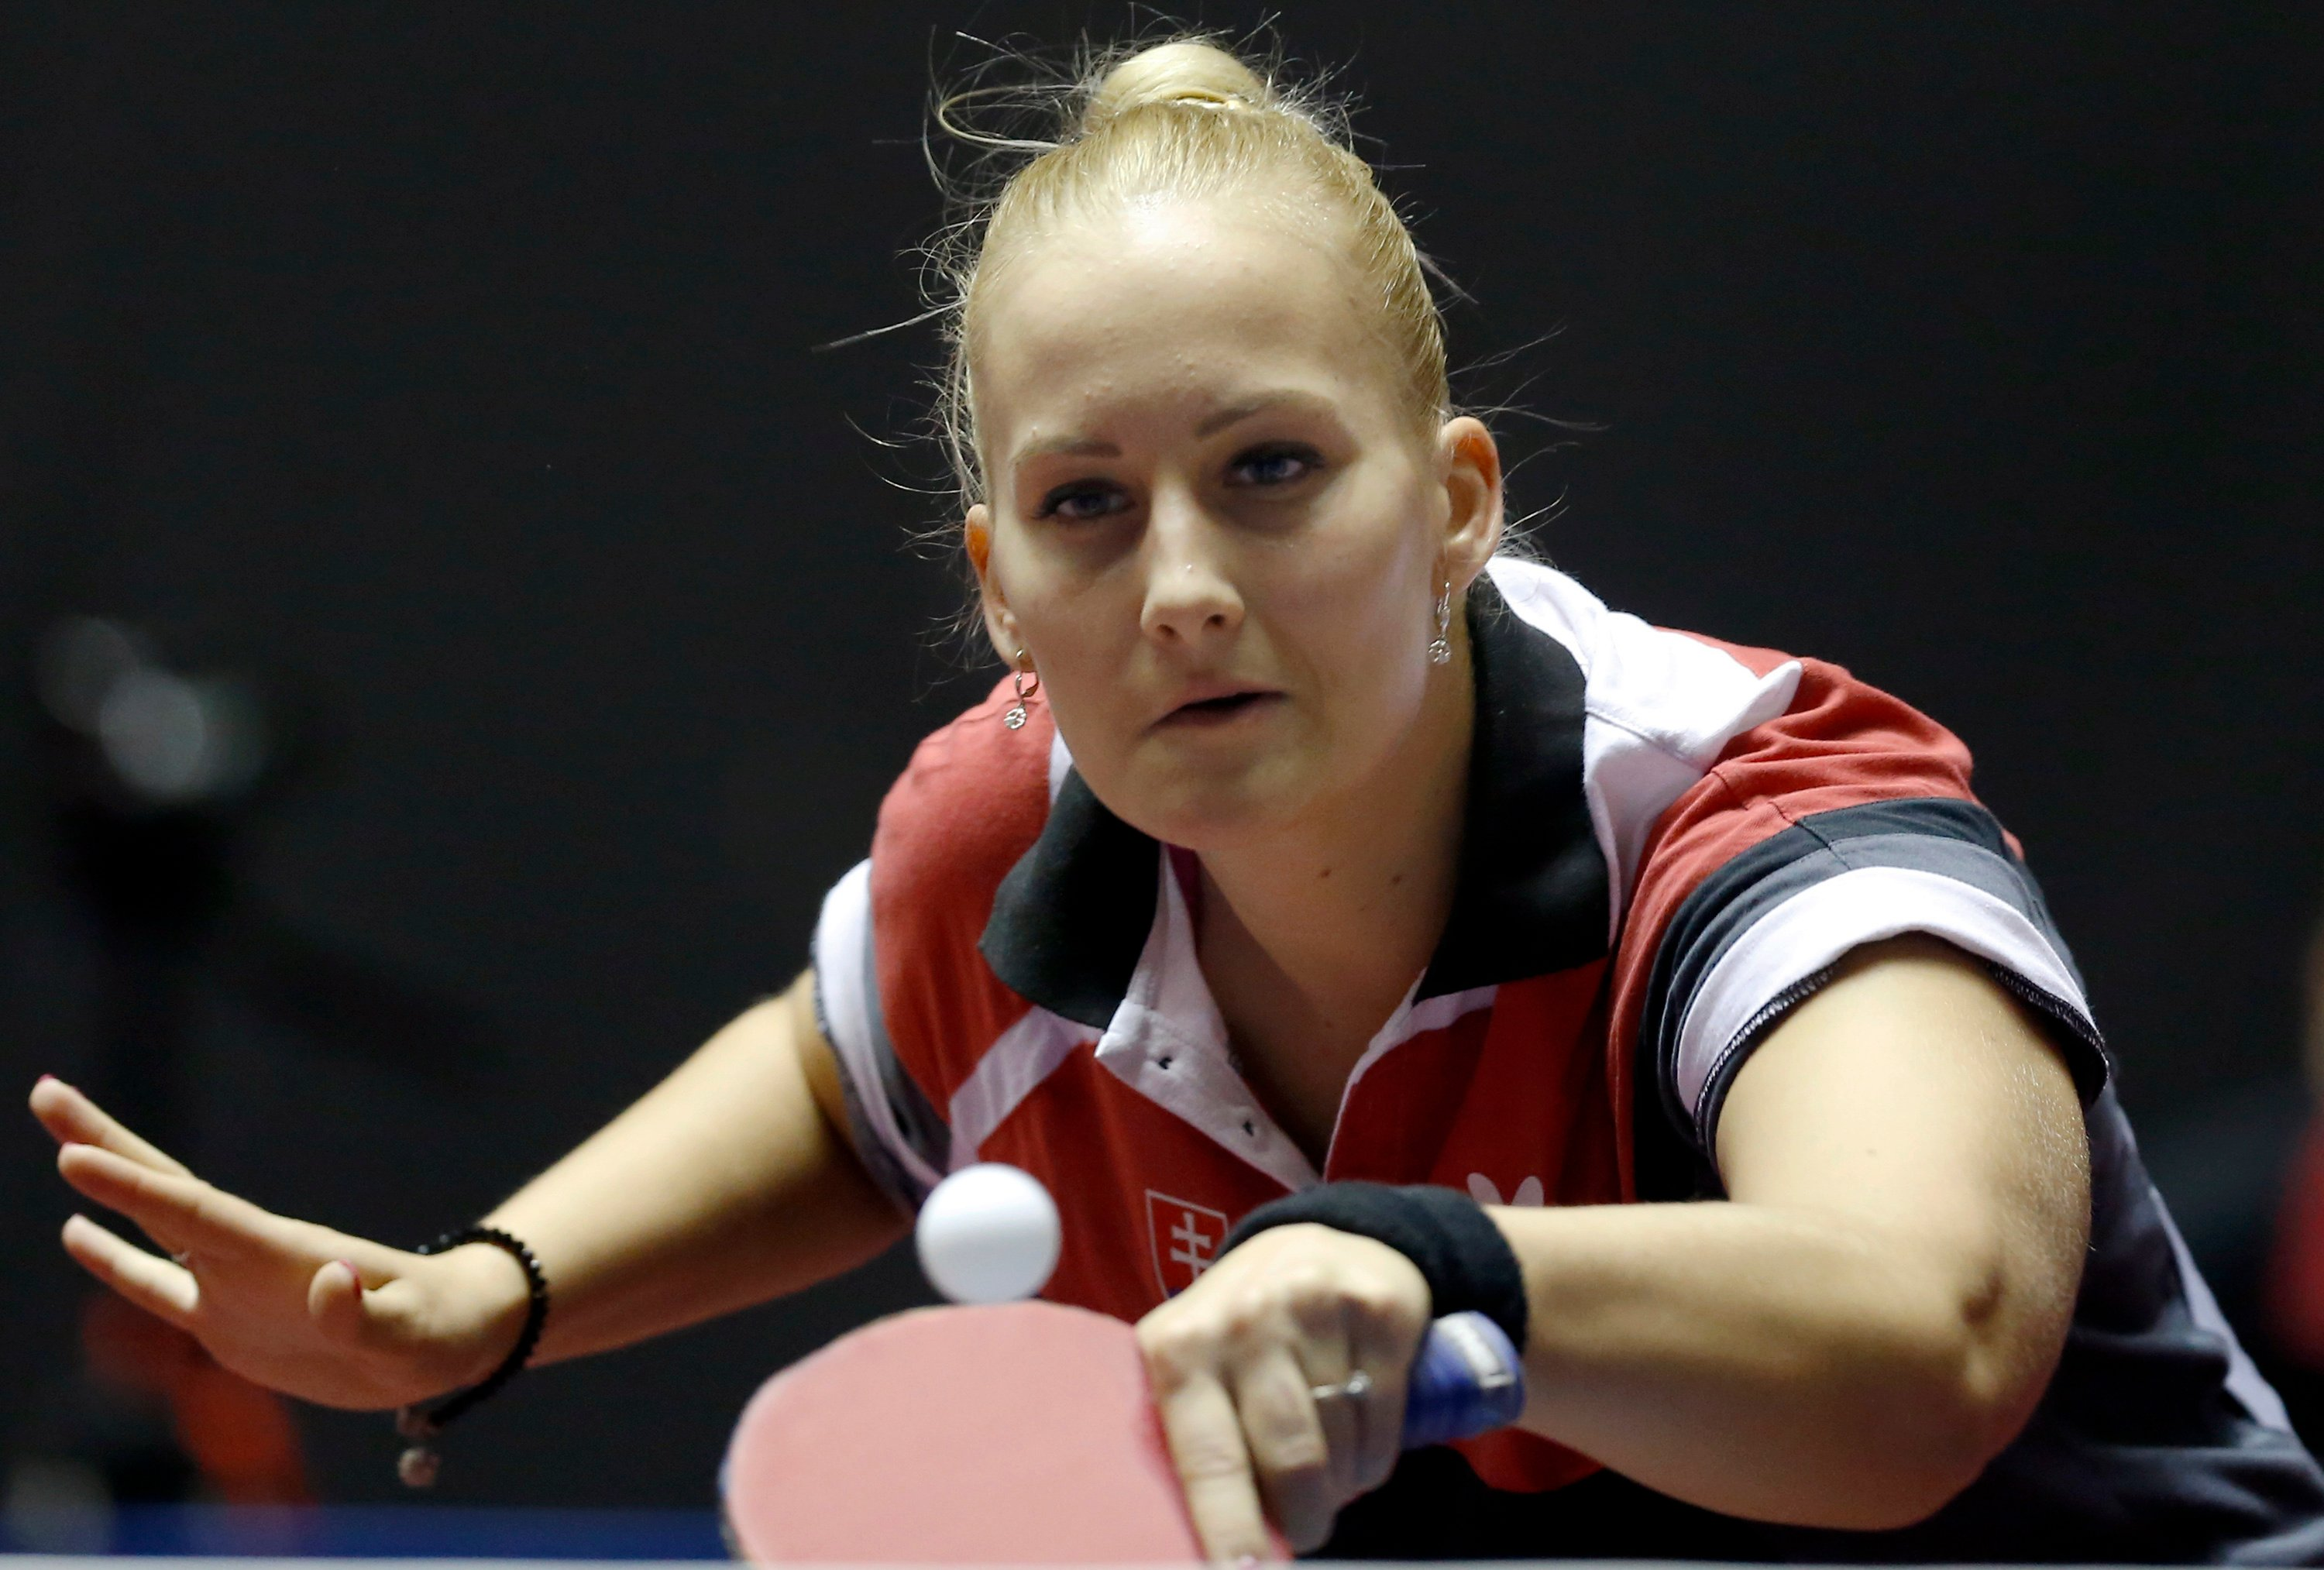 japan_table_tennis_world_team07100814800_r1852.jpg